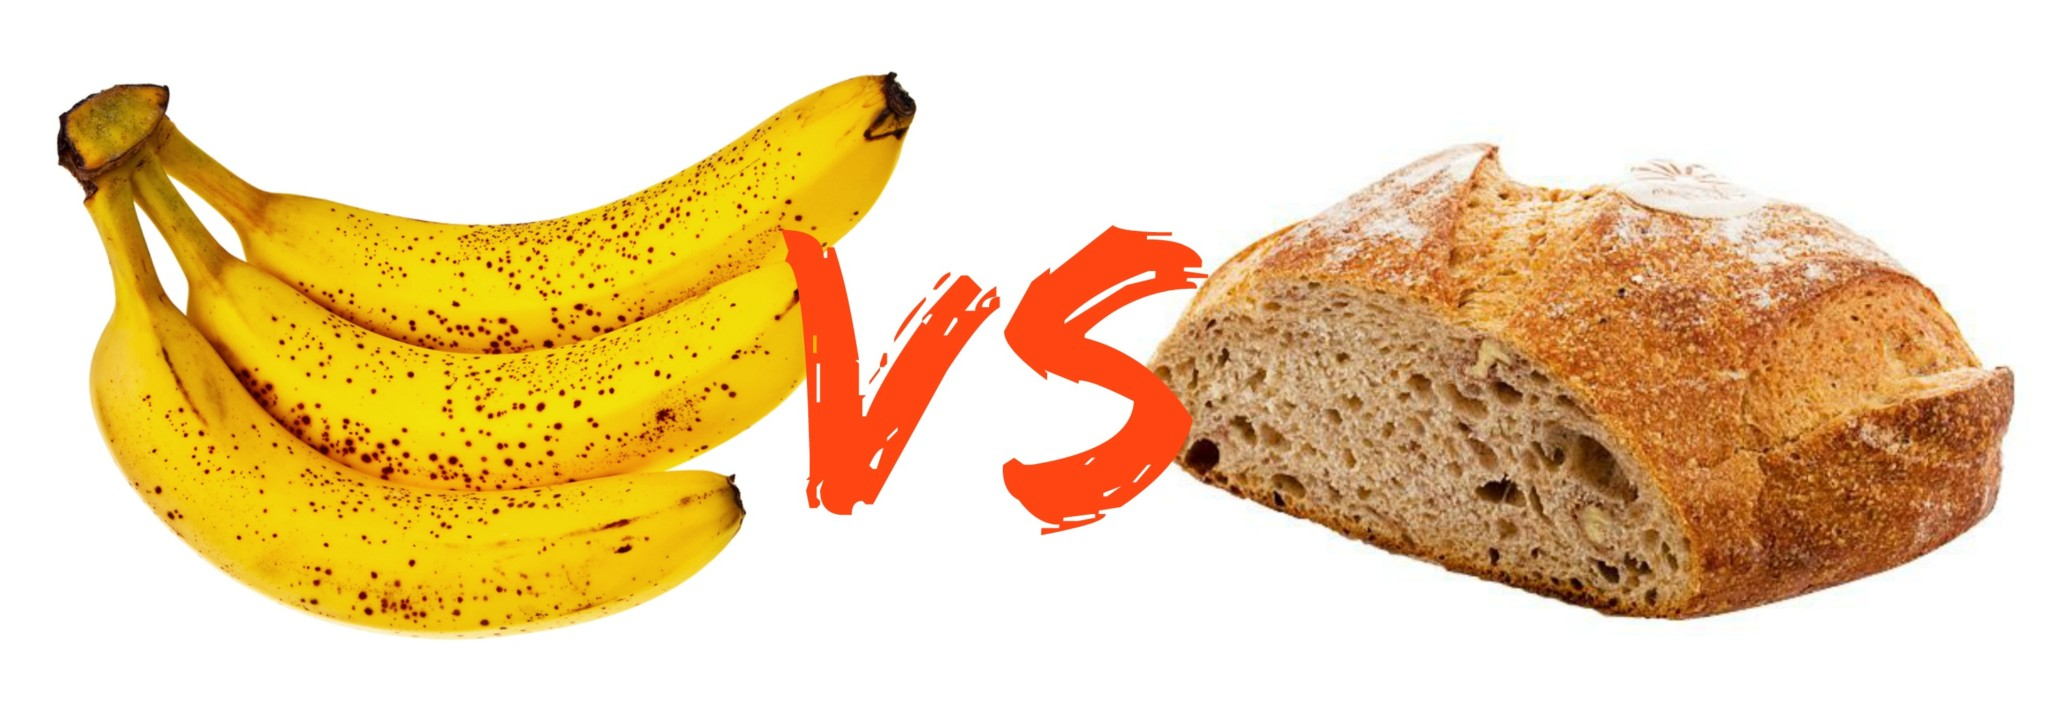 banane vs pain charge glycémique